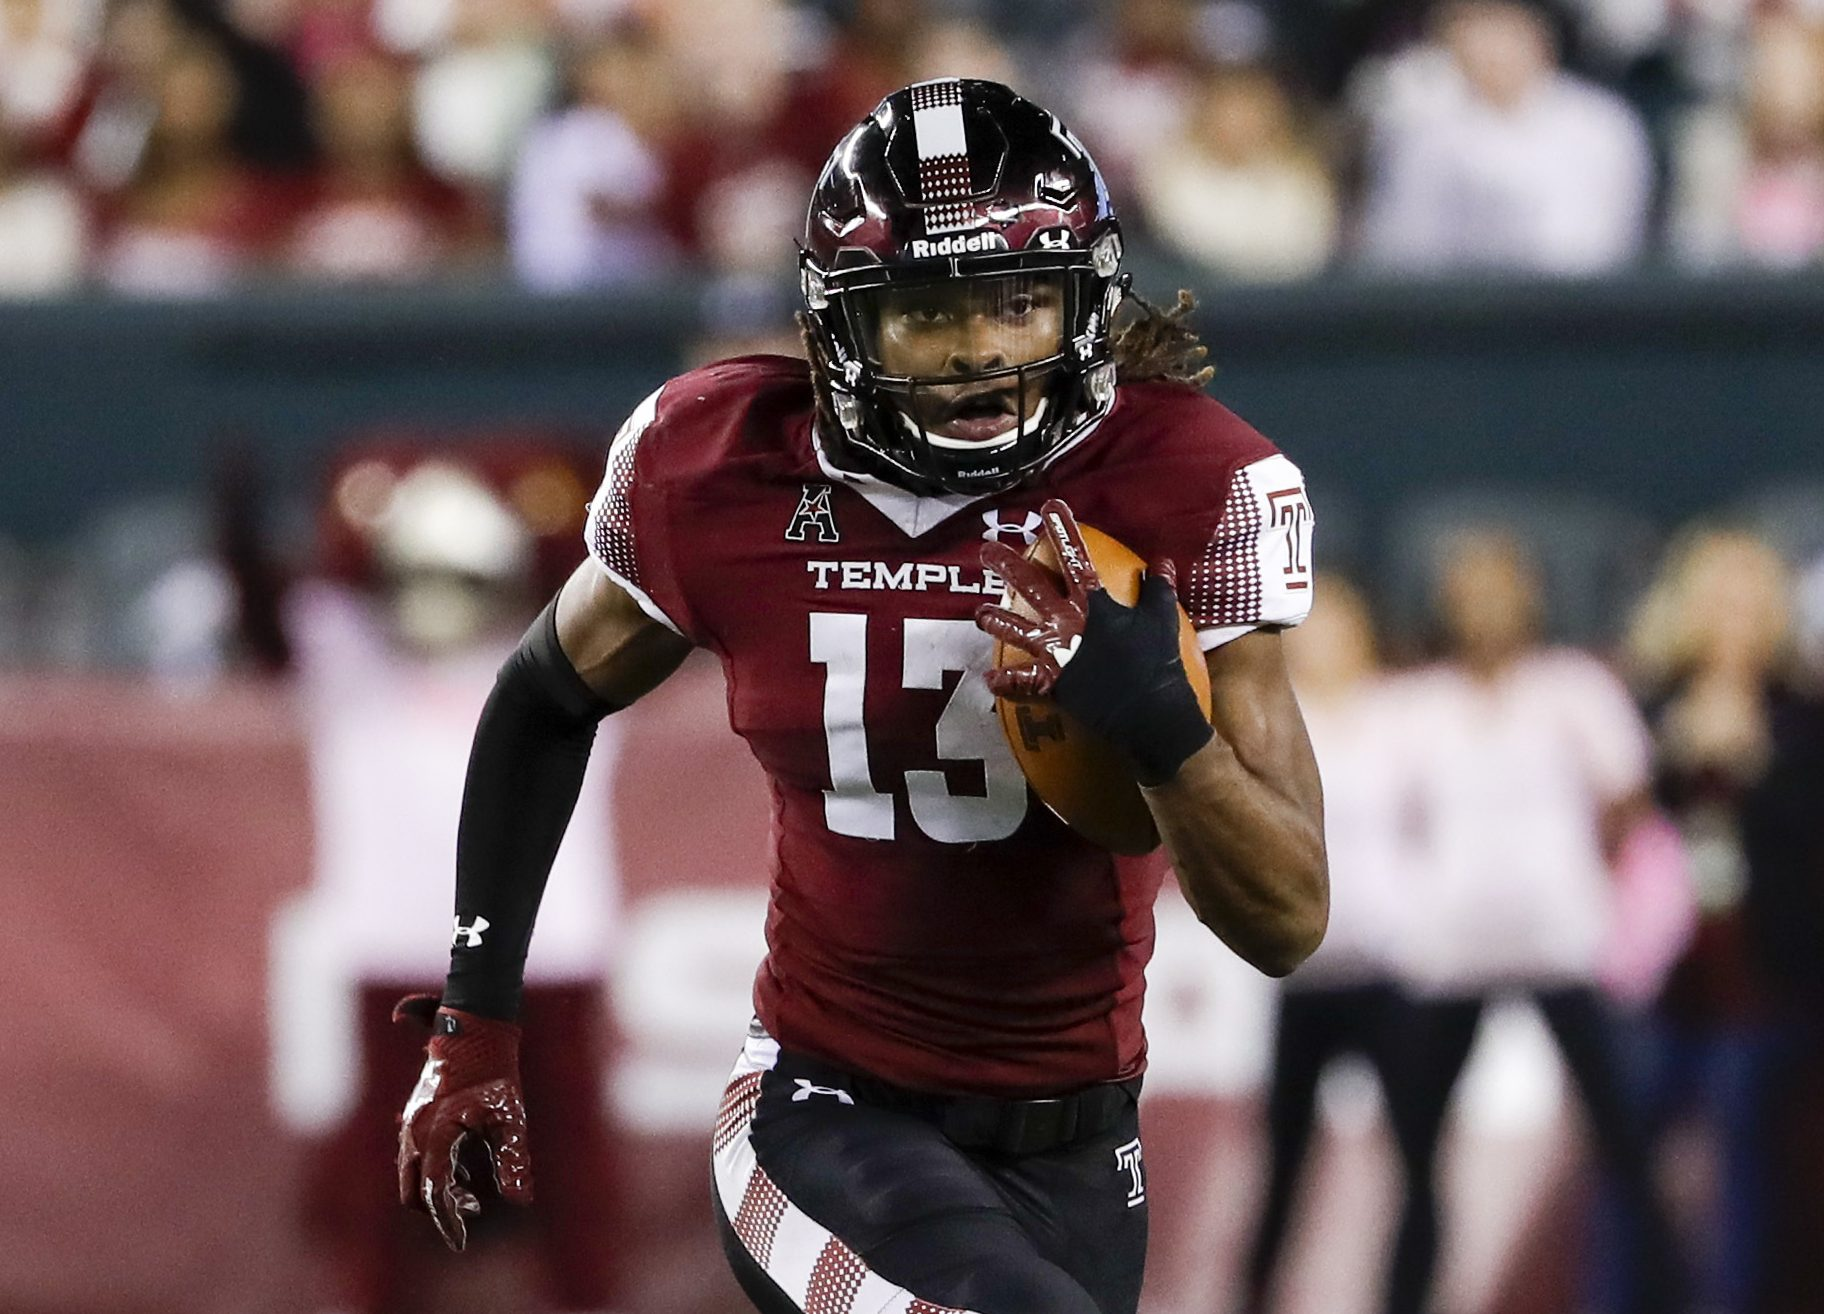 Temple wide receiver Isaiah Wright runs with the football against Navy on Thursday, November 2, 2017 in Philadelphia. YONG KIM / Staff Photographer